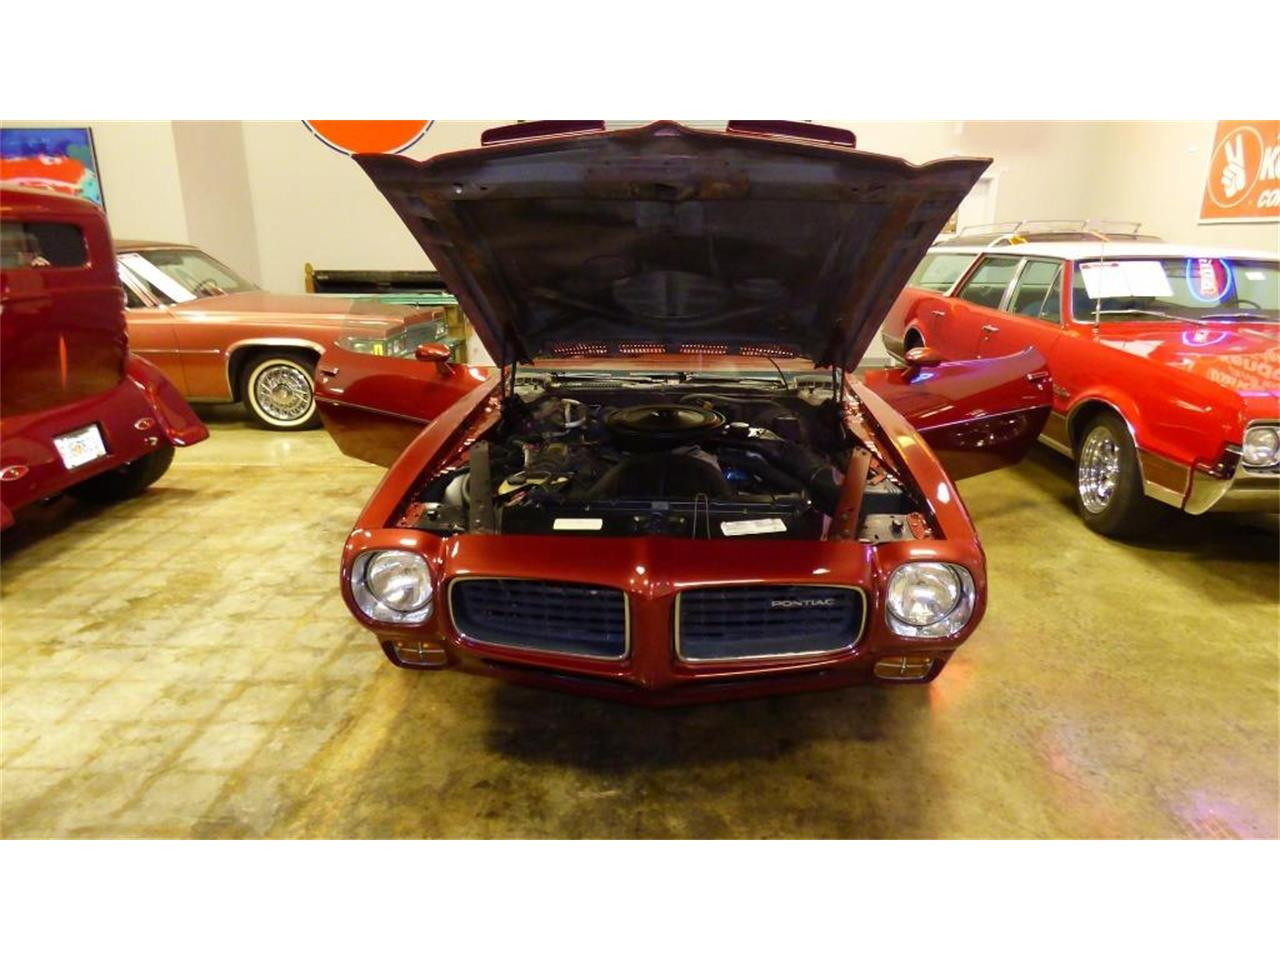 Large Picture of Classic '73 Pontiac Firebird Formula - $27,995.00 Offered by Cruisers Specialty Autos - PZRG